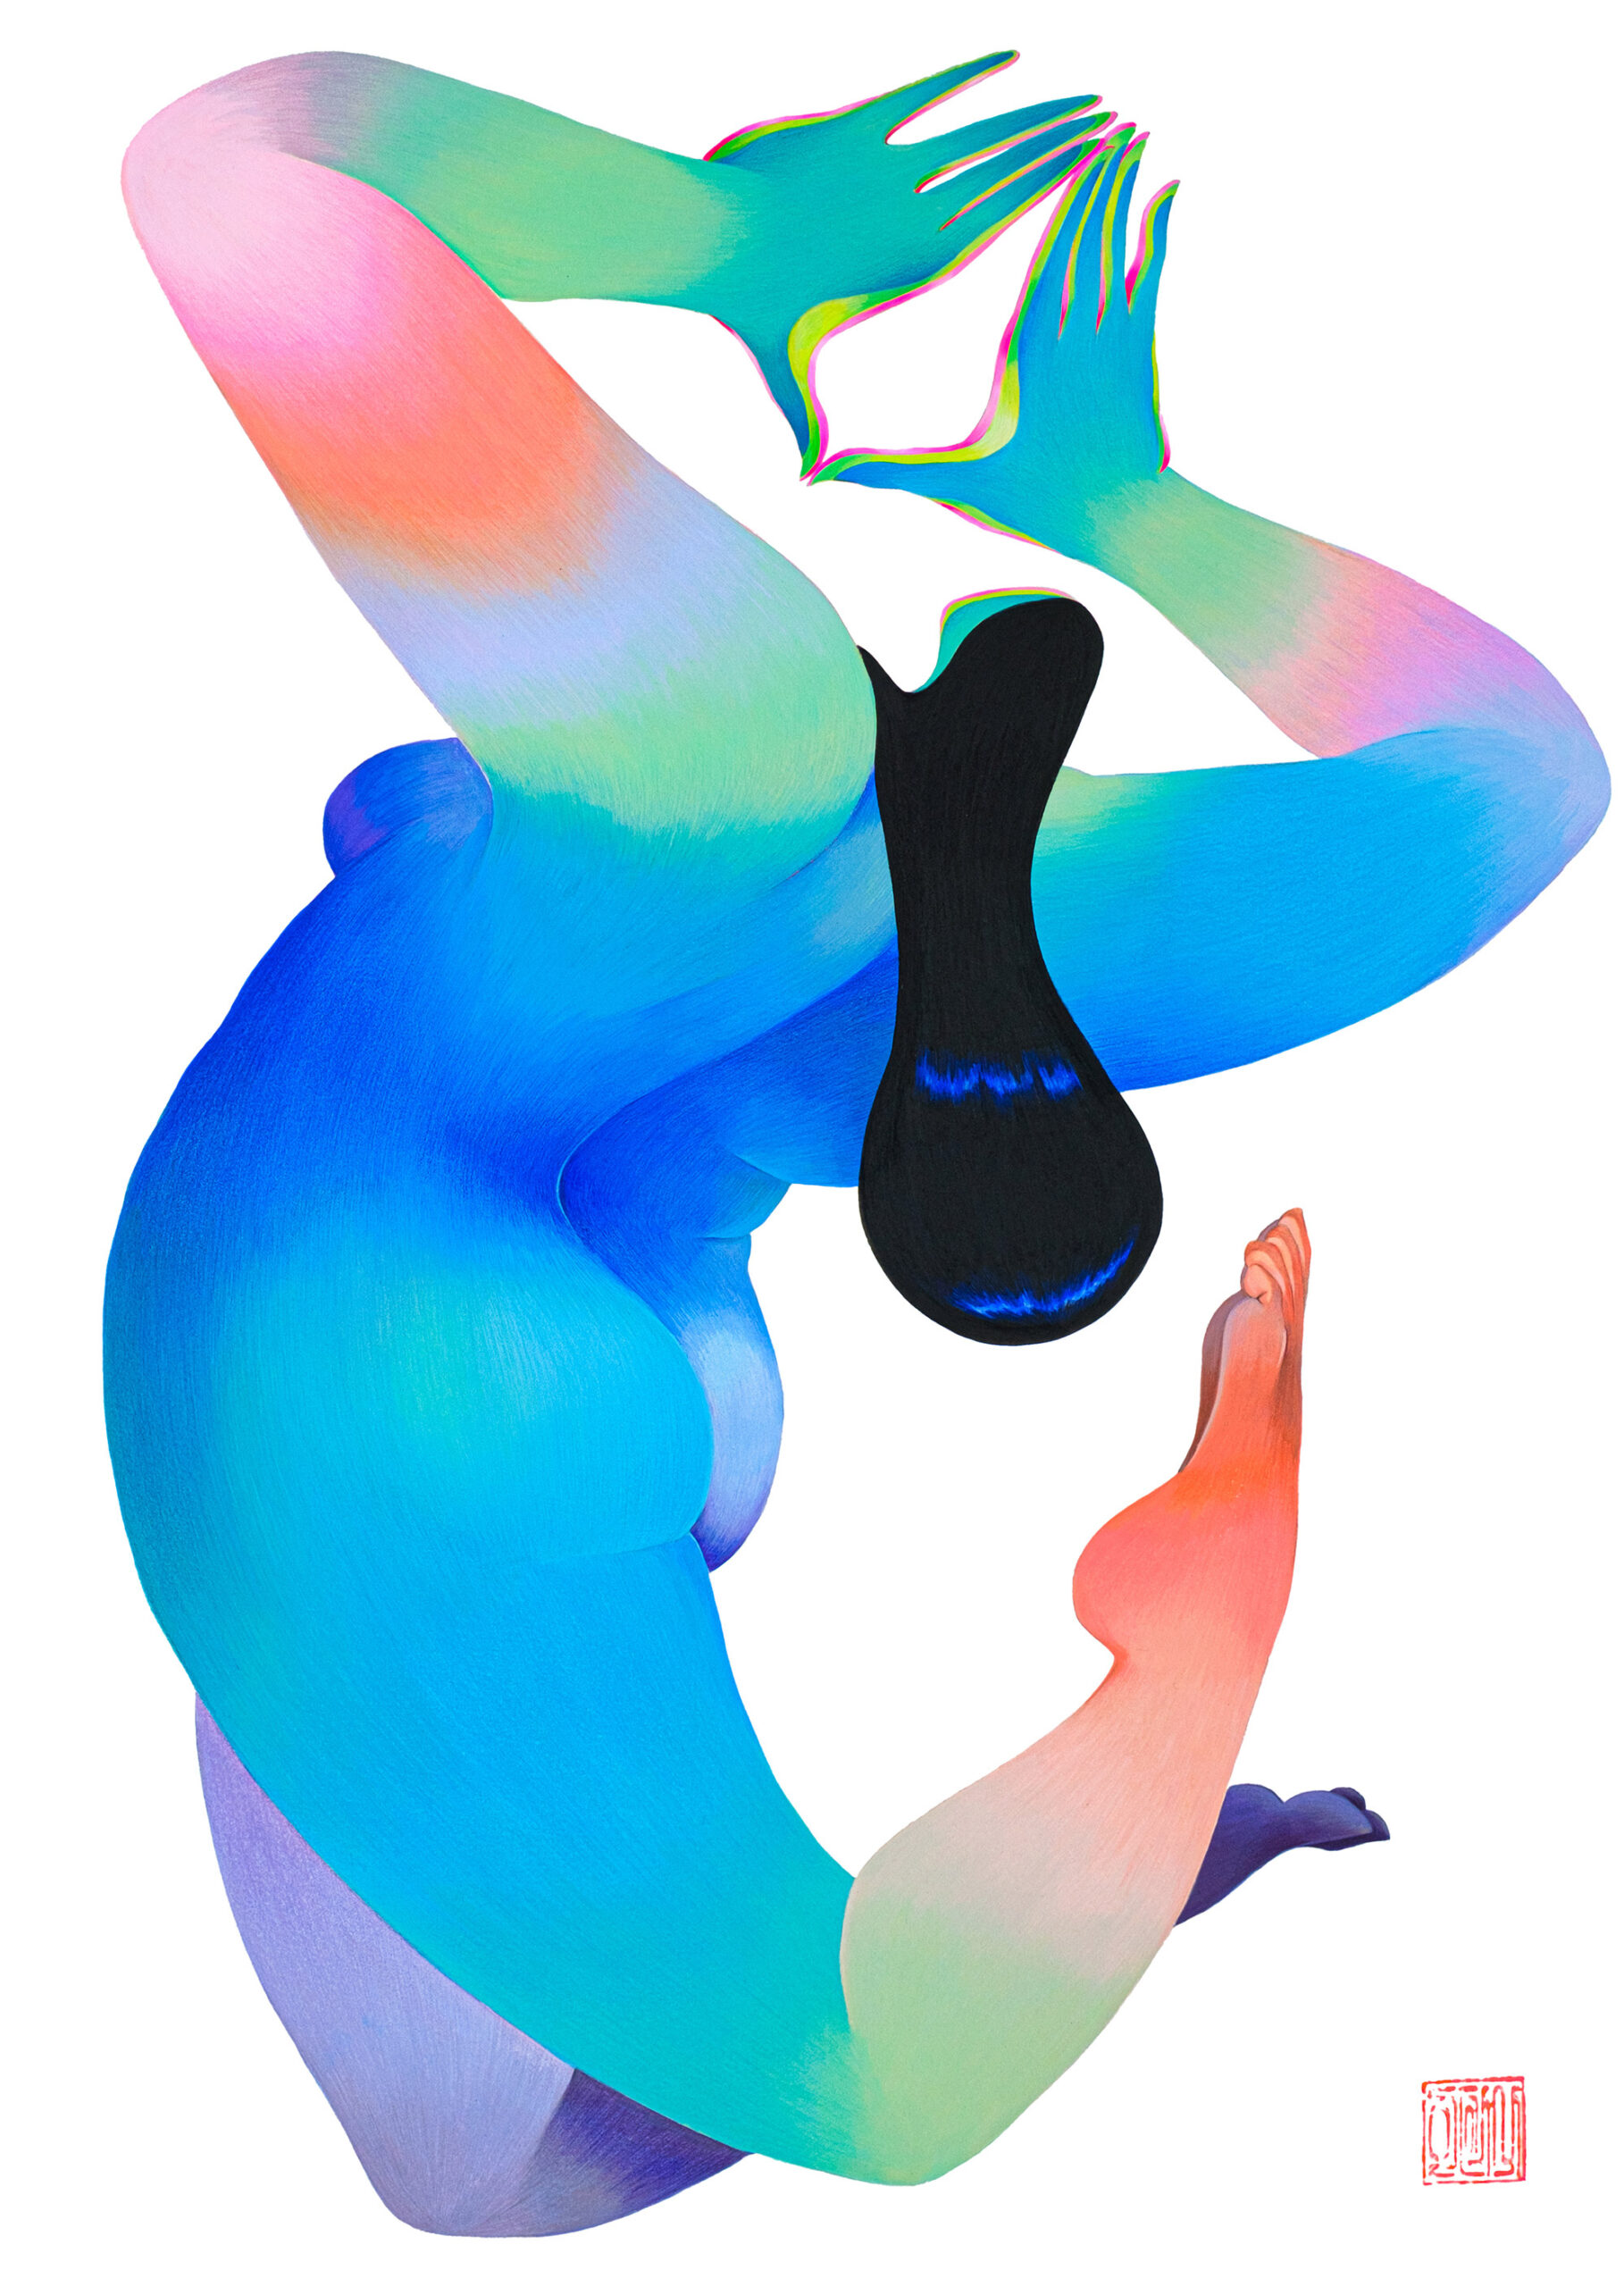 Posed Women Rendered in Vibrant Gradients by Hanna Lee Joshi Embody Loss and Acceptance